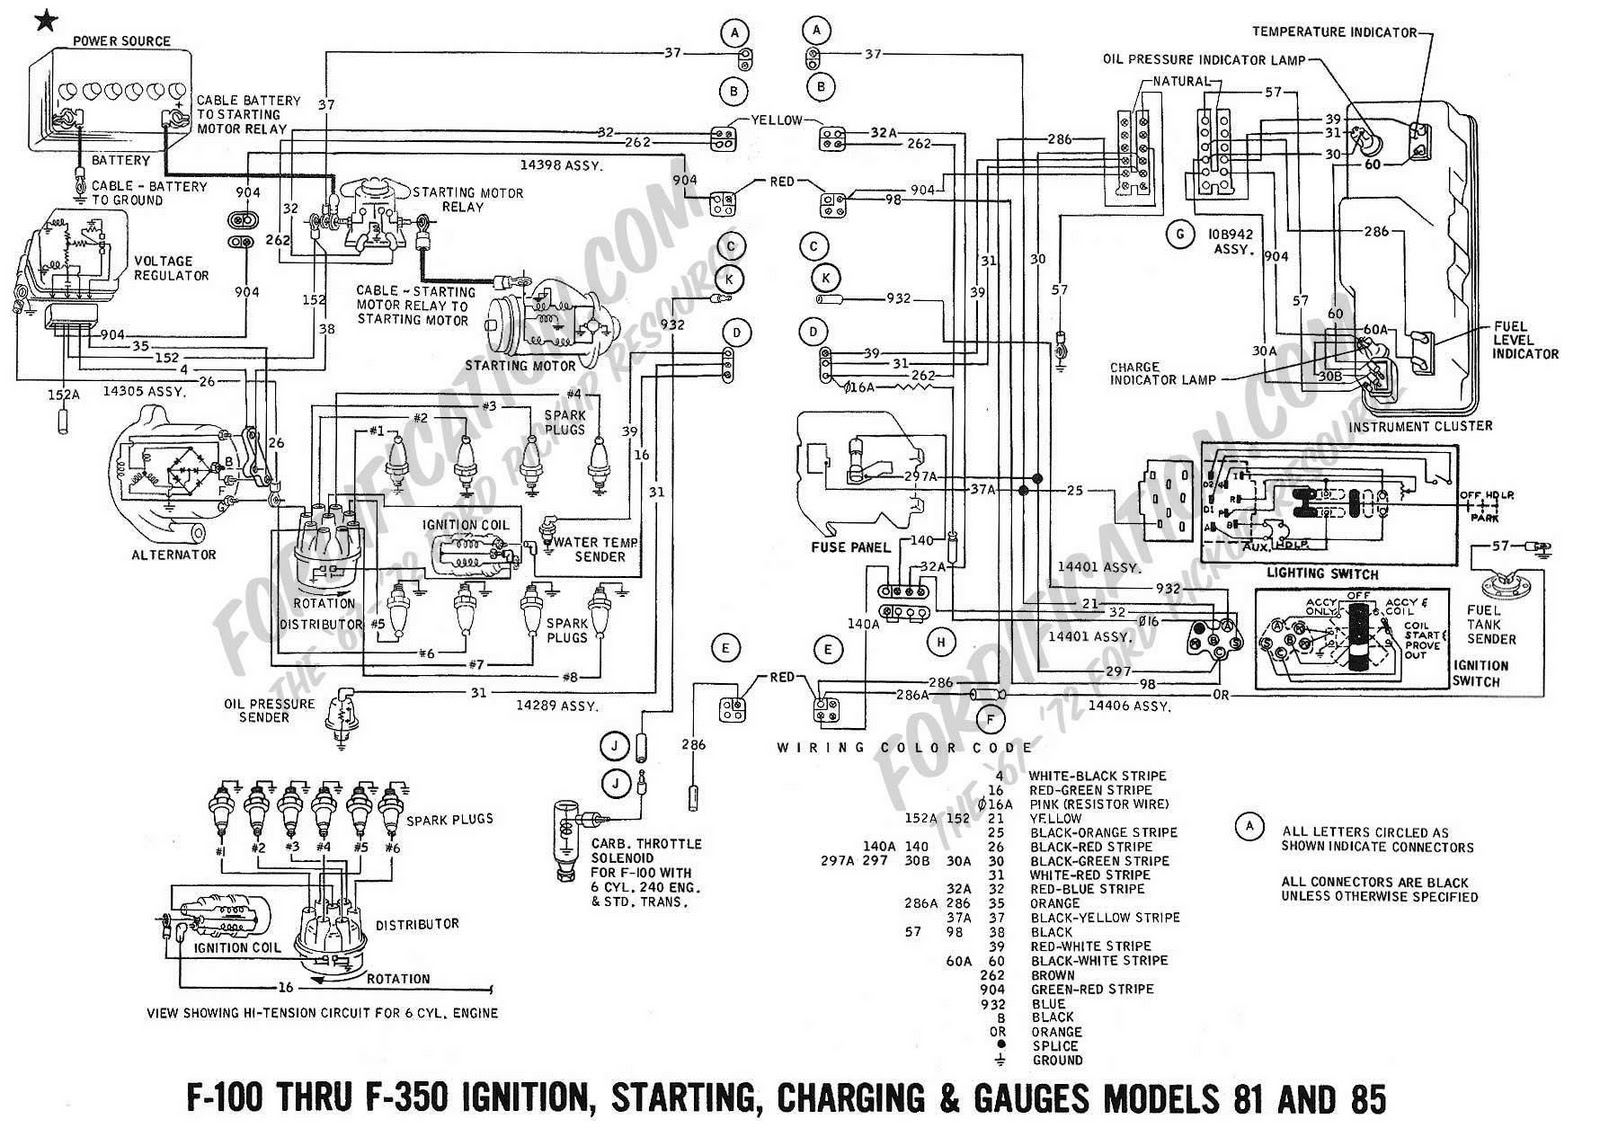 1969 ford f100-f350 ignition, starting, charging, and ... 1969 ford bronco alternator wiring diagram